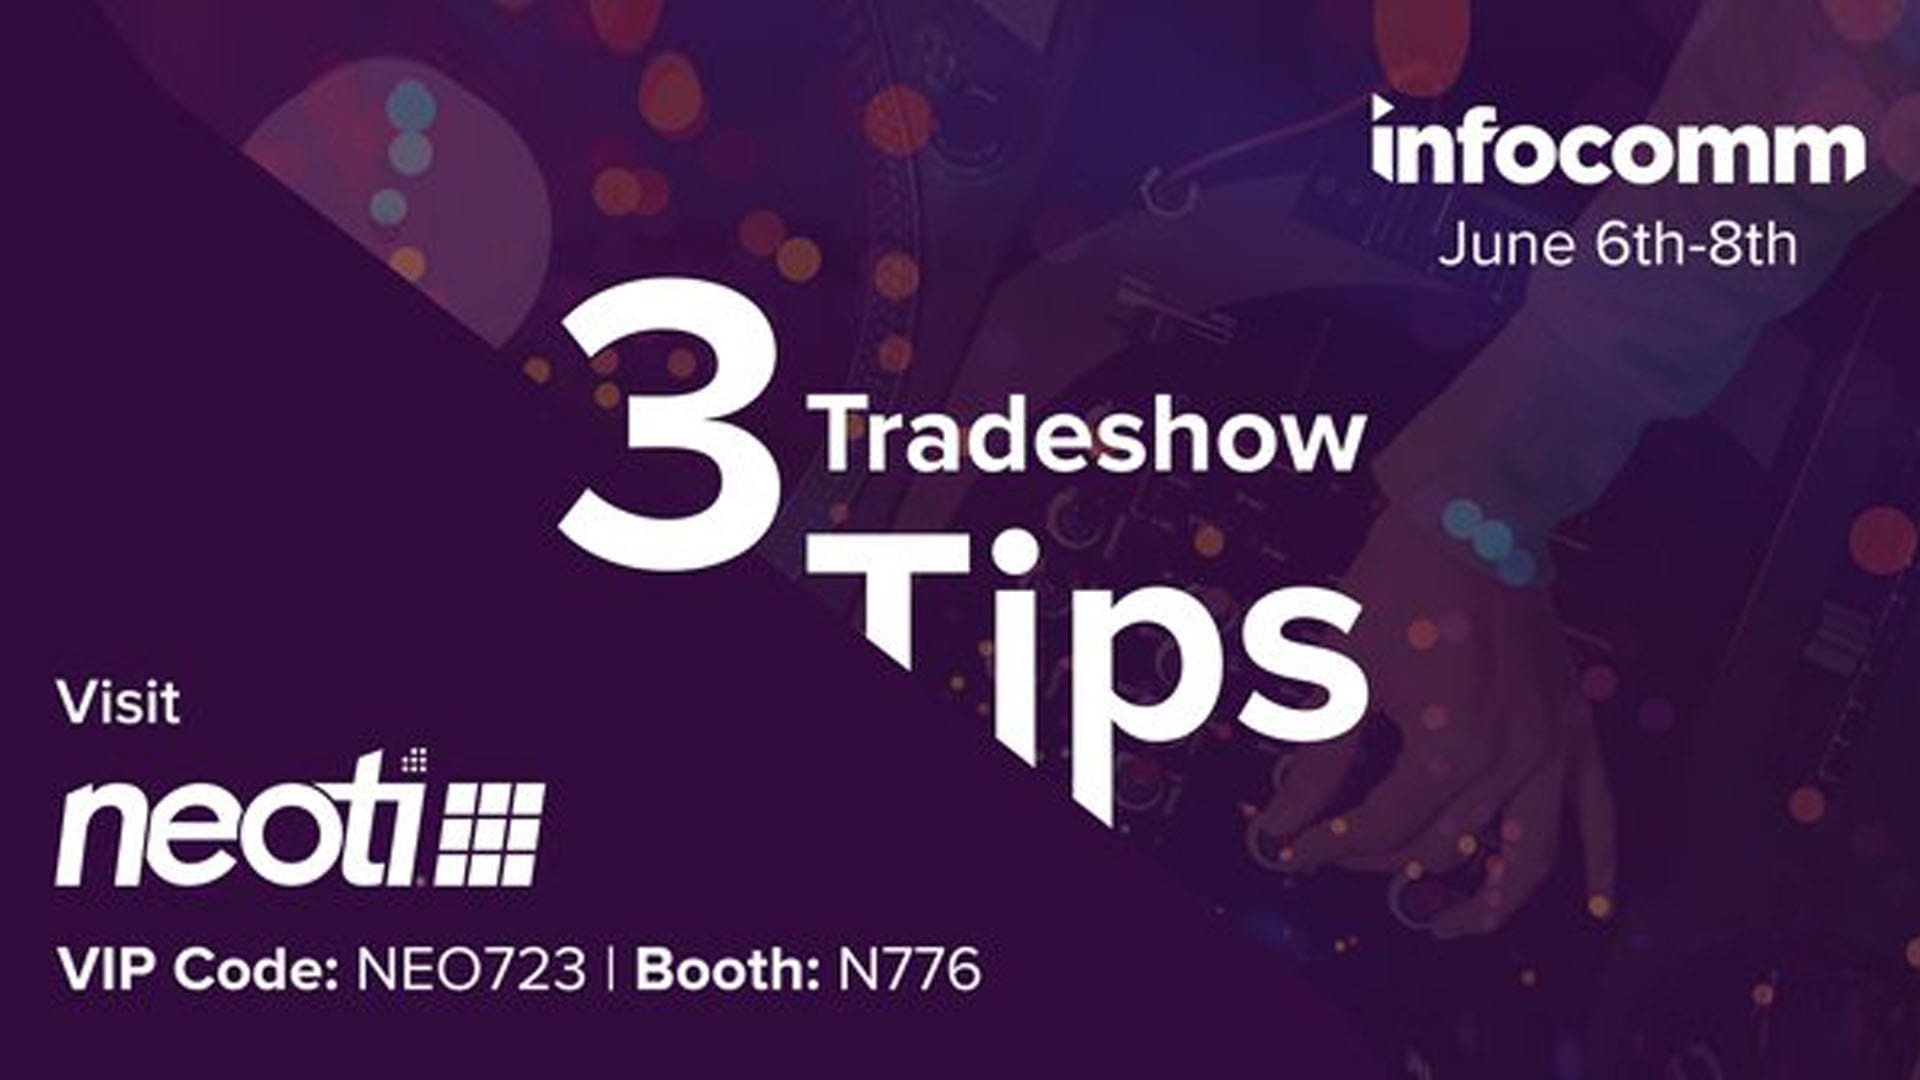 3 Tradeshow tips for Infocomm 2018